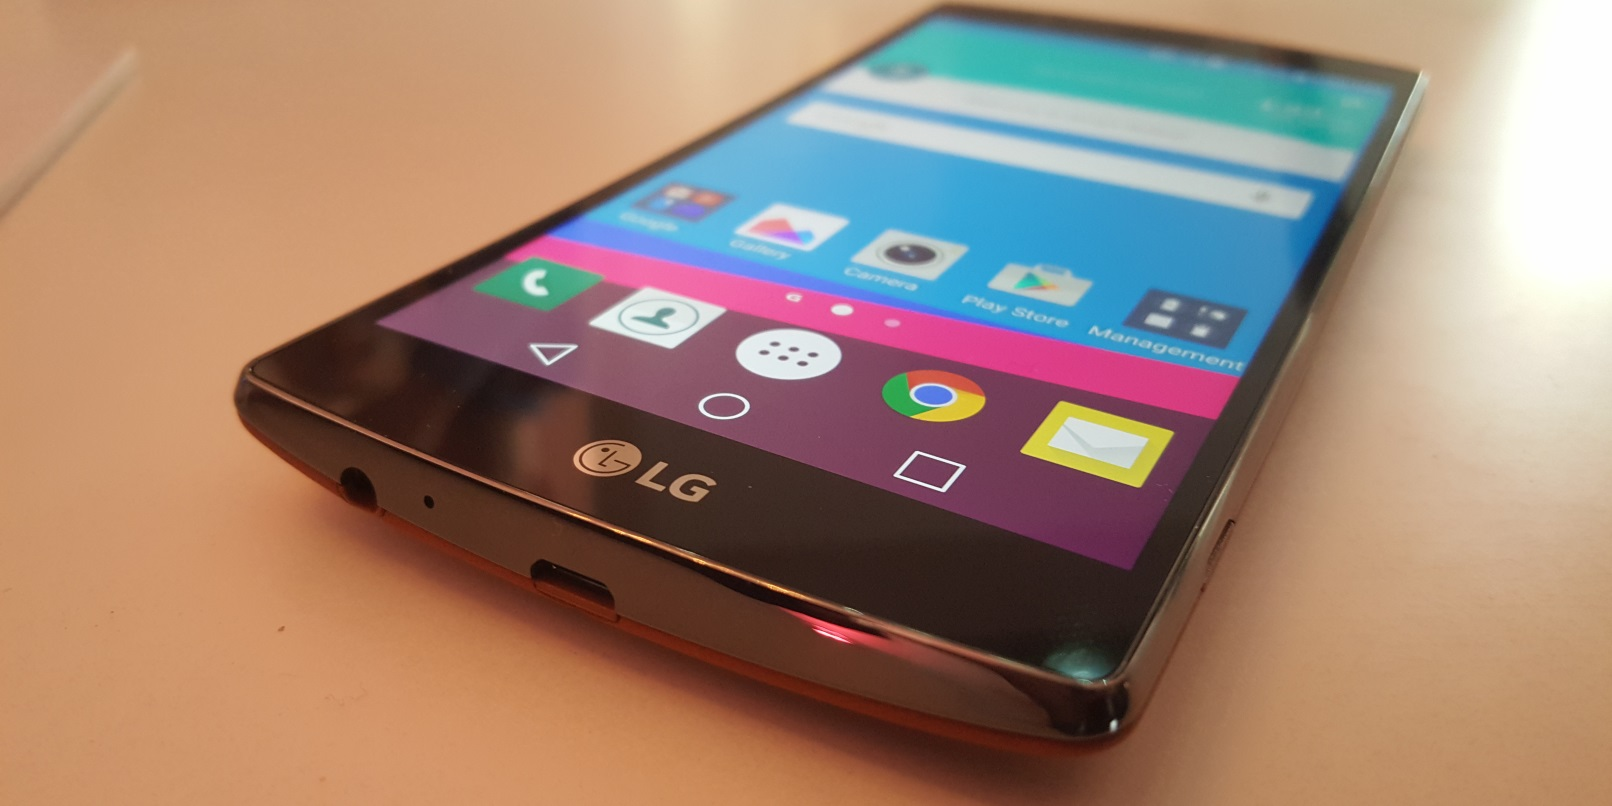 Hands-on with the LG G4's Curved 5 5